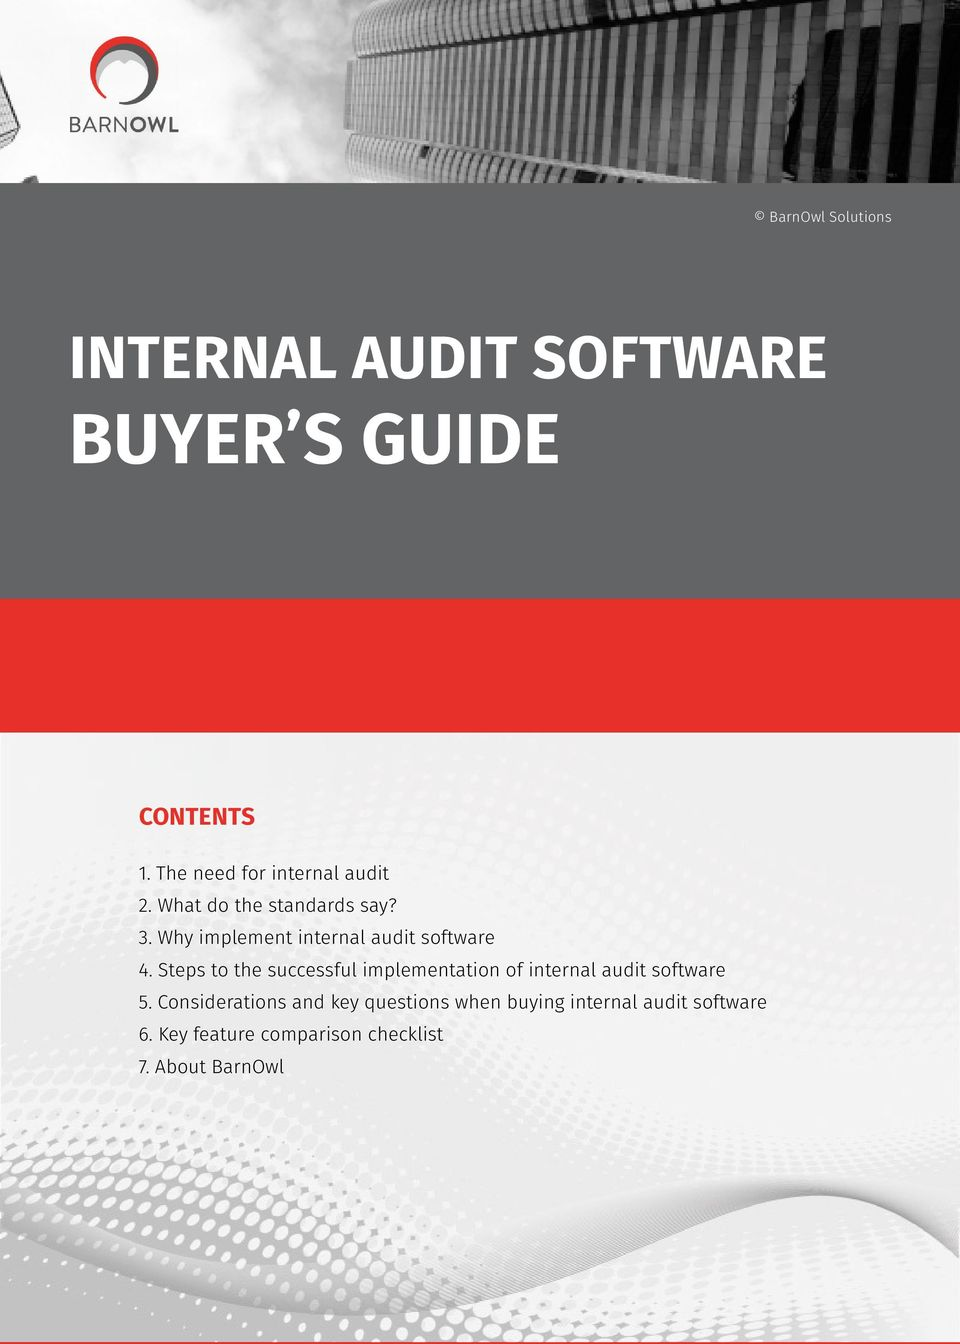 INTERNAL AUDIT SOFTWARE BUYER S GUIDE - PDF